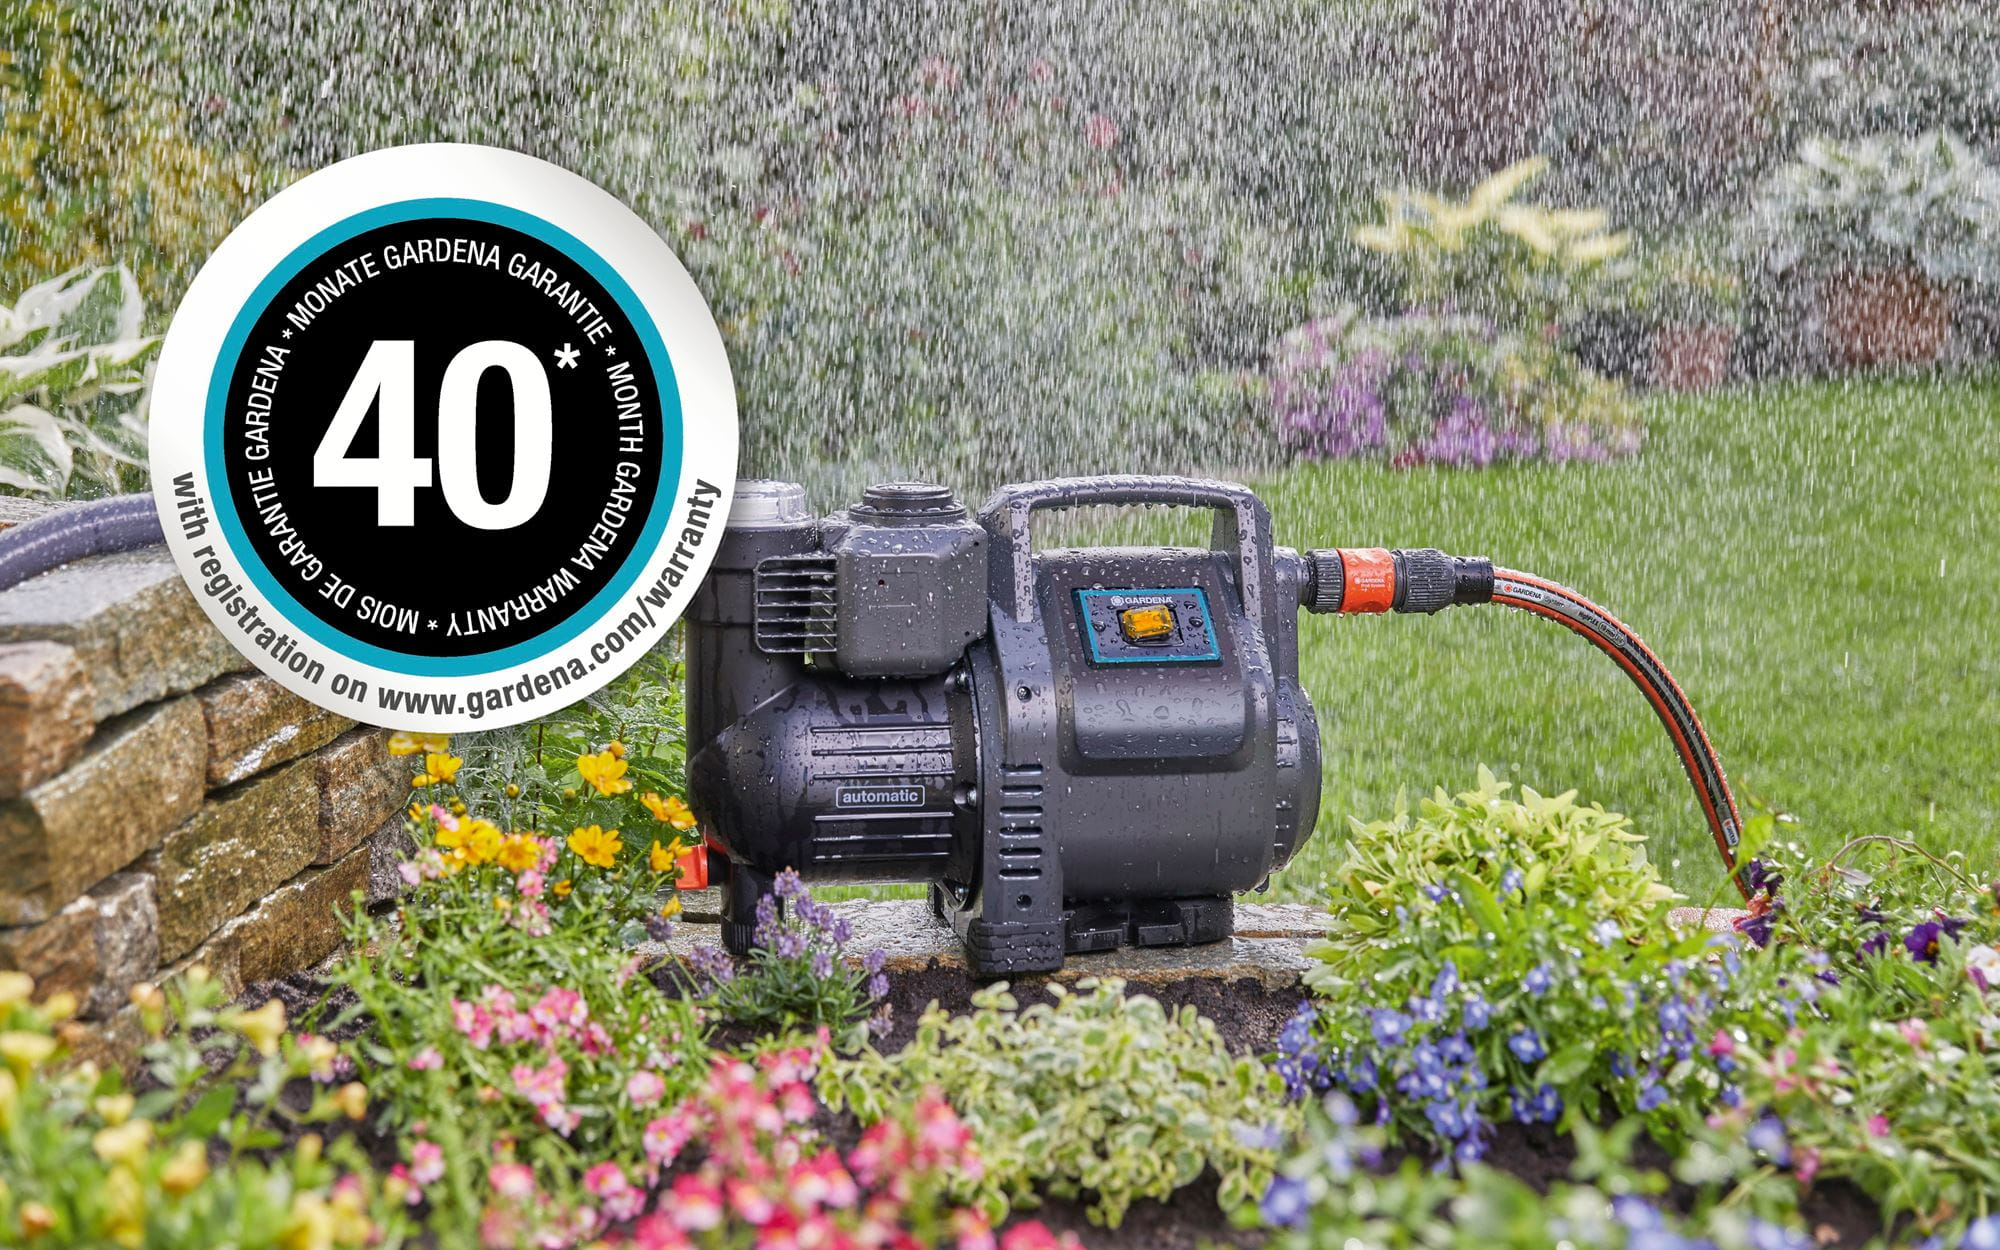 GARDENA - 40 months of warranty for pumps